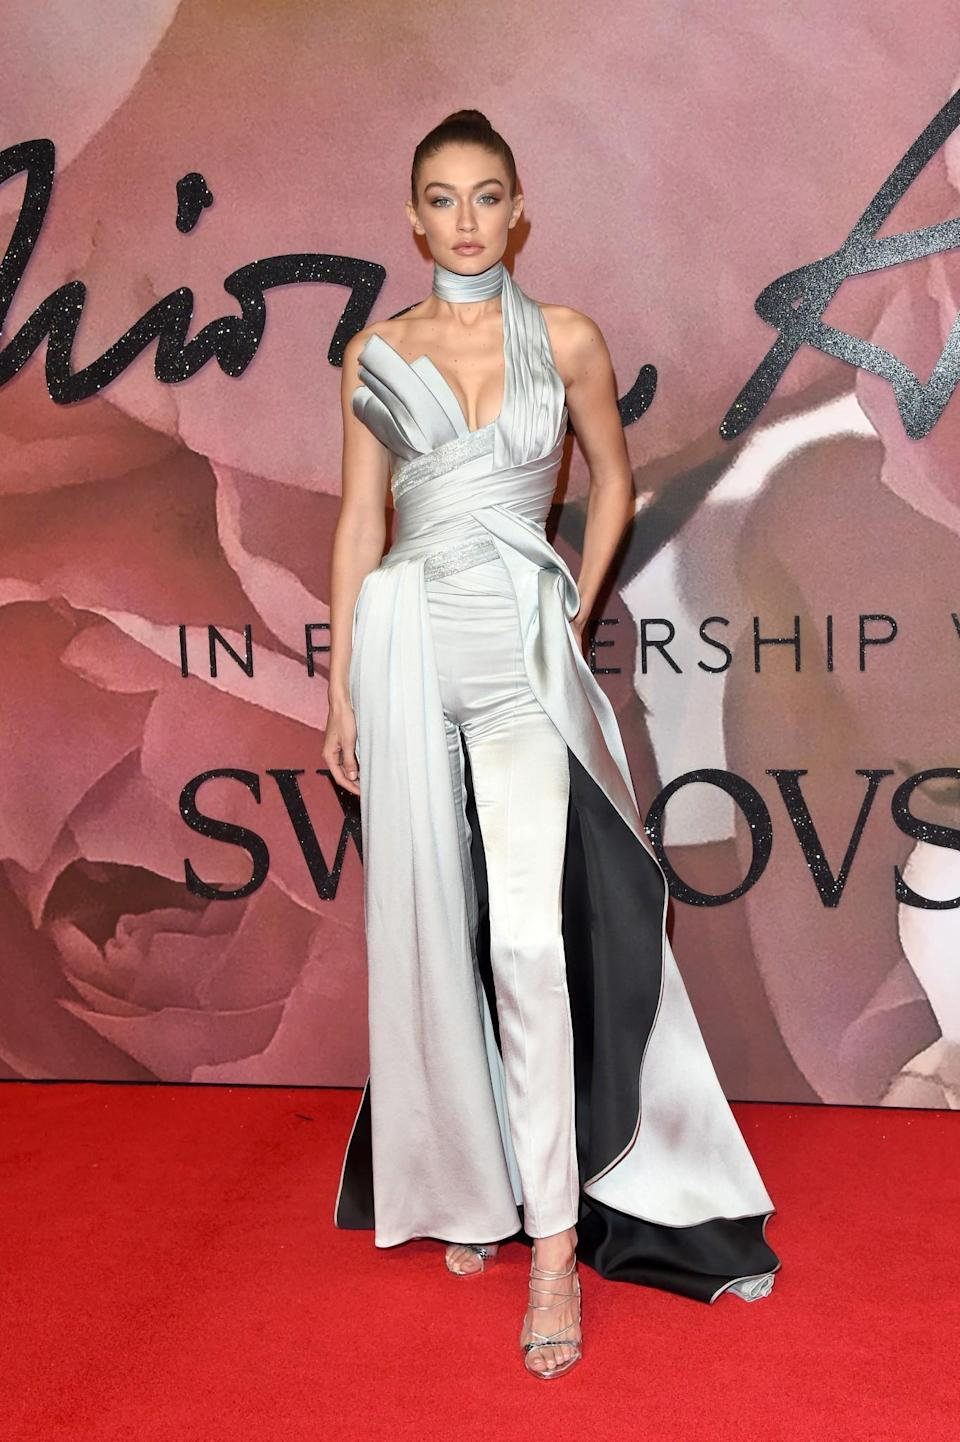 <p>The supermodel wore a stunning one-shoulder silver jumpsuit that tied at the neck. The ensemble featured pants and a train, because no girl should ever have to decide between the two. Hadid completed the look with a high bun, silver strappy heels, and heavy eye makeup. (Photo: Getty Images) </p>